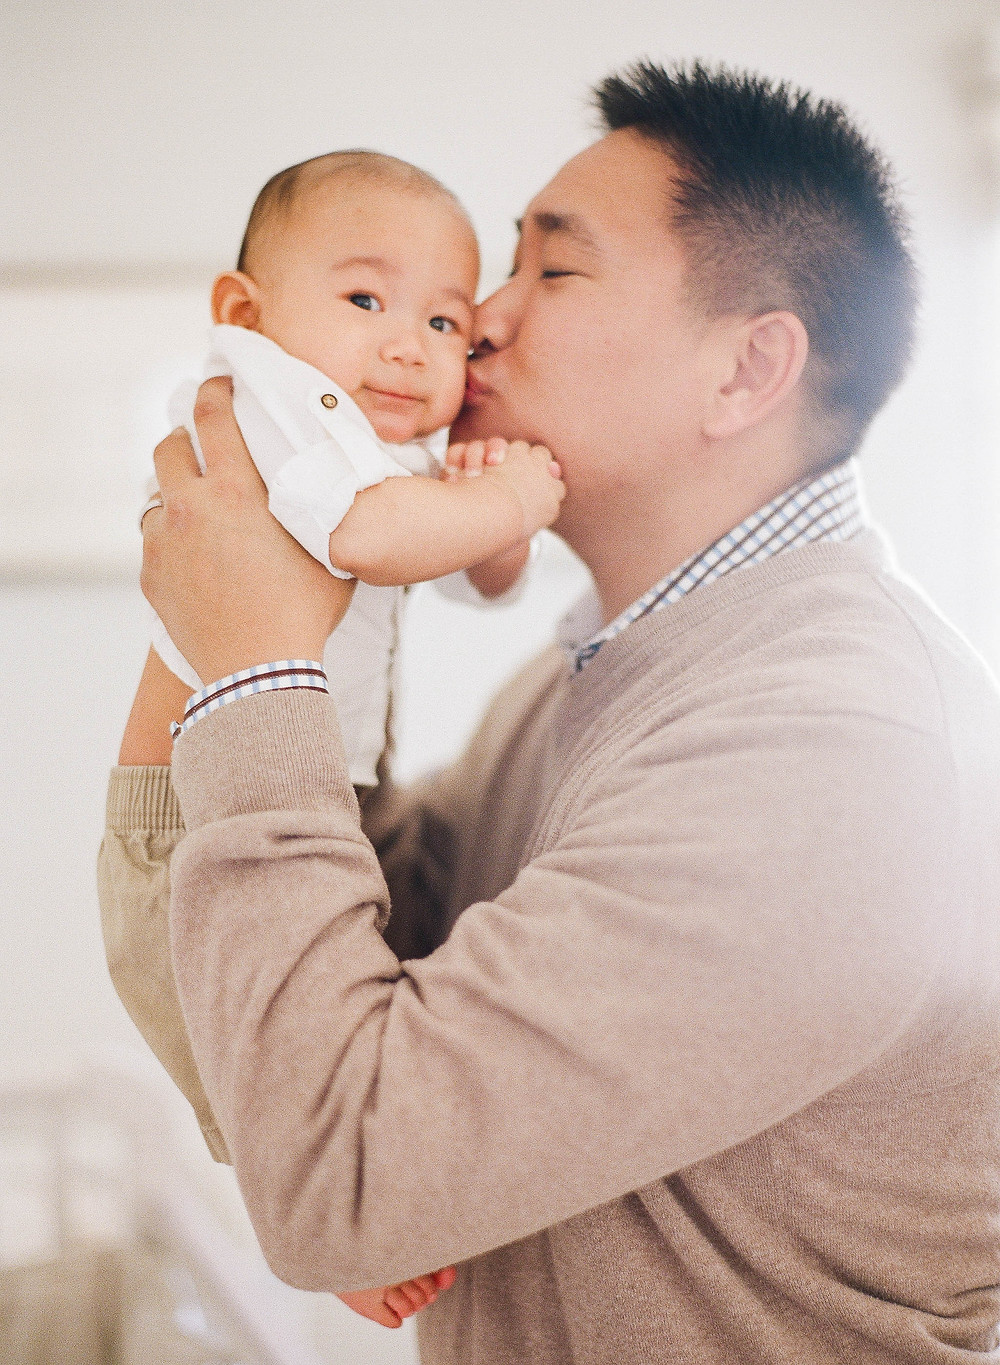 At home family portrait on film in los angeles with asian dad kissing baby's cheek